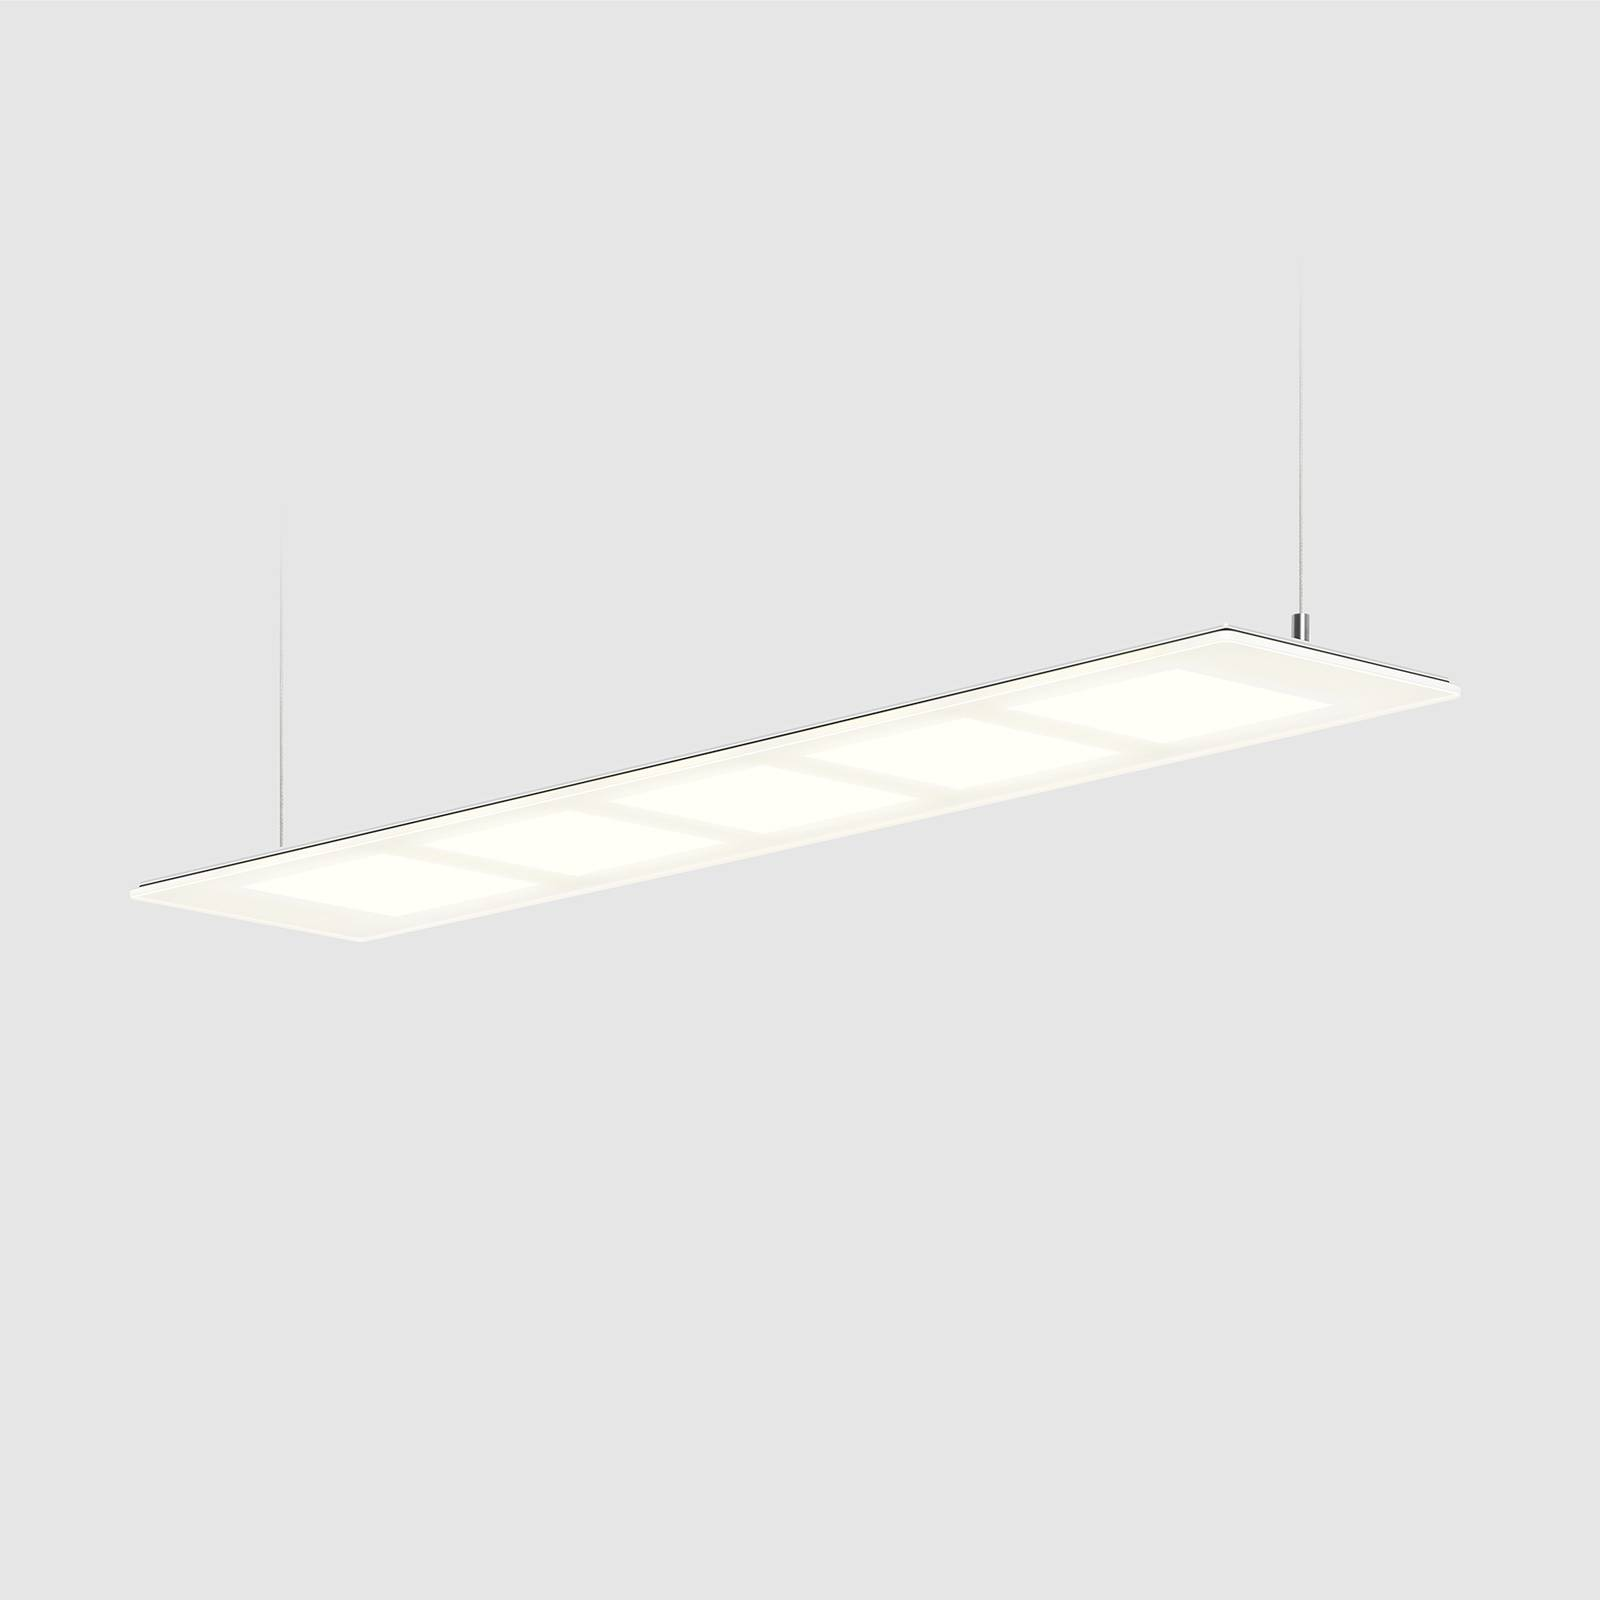 Suspension OLED blanche OMLED One s5